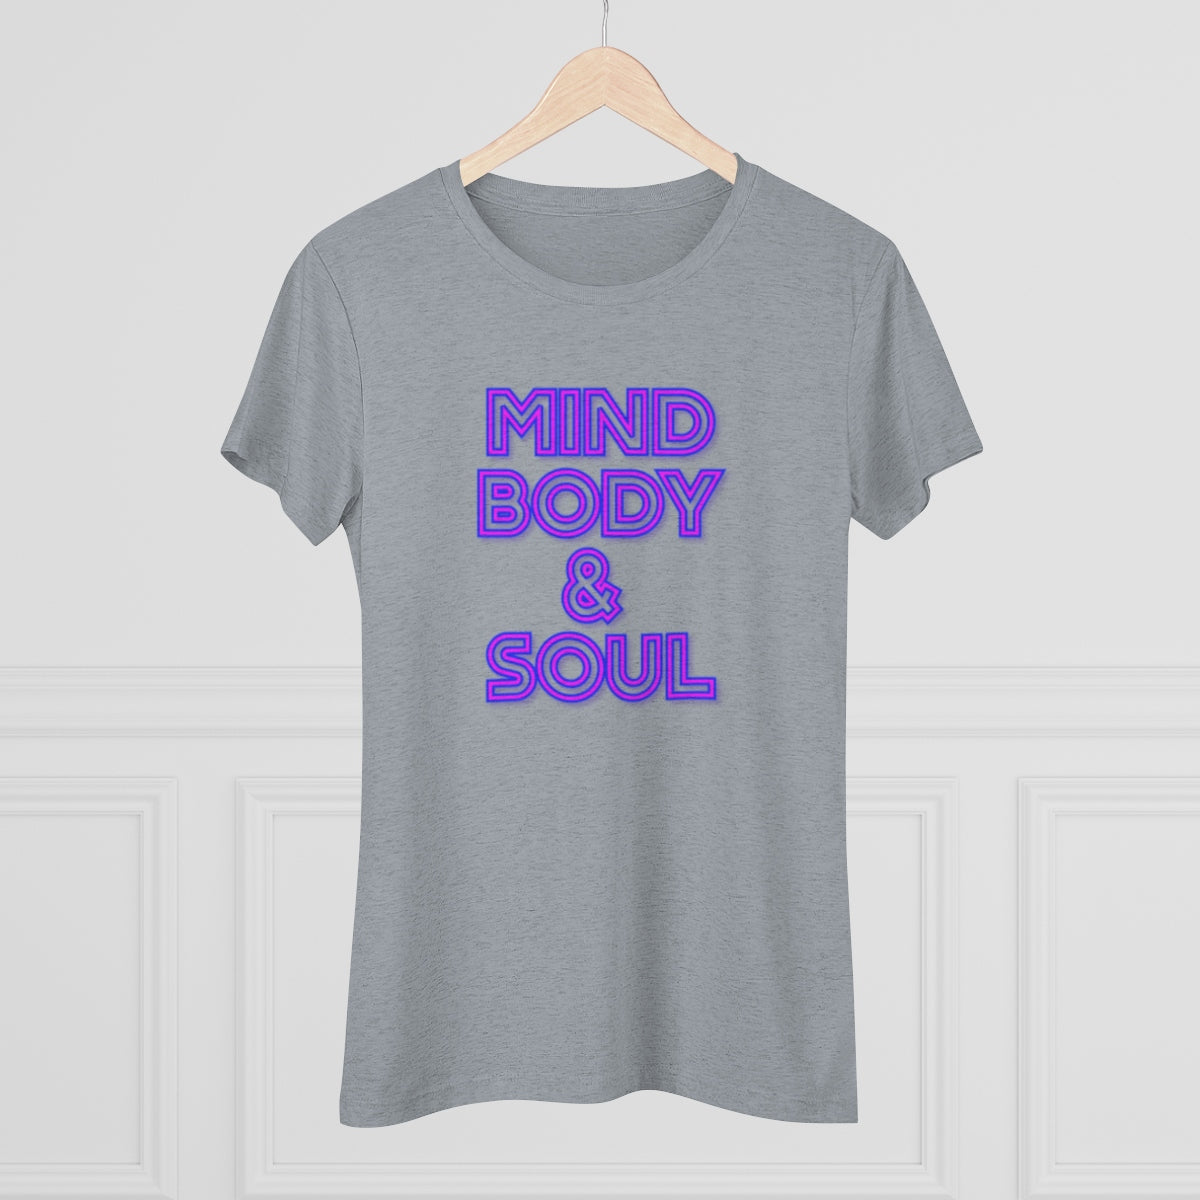 MIND, BODY & SOUL-Women's Triblend Tee